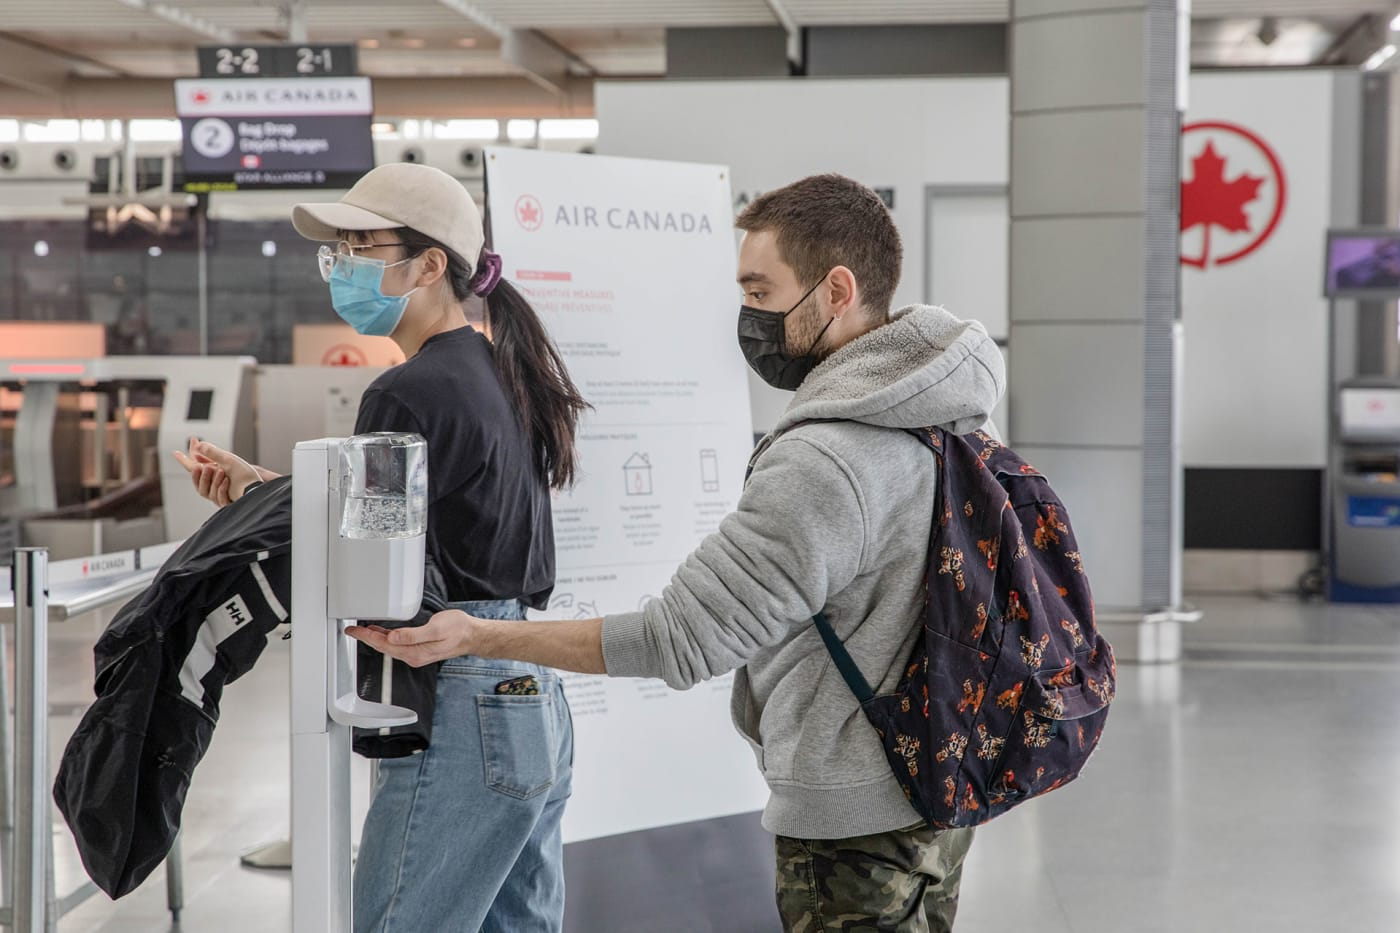 Travellers at Toronto's Pearson airport during pandemic